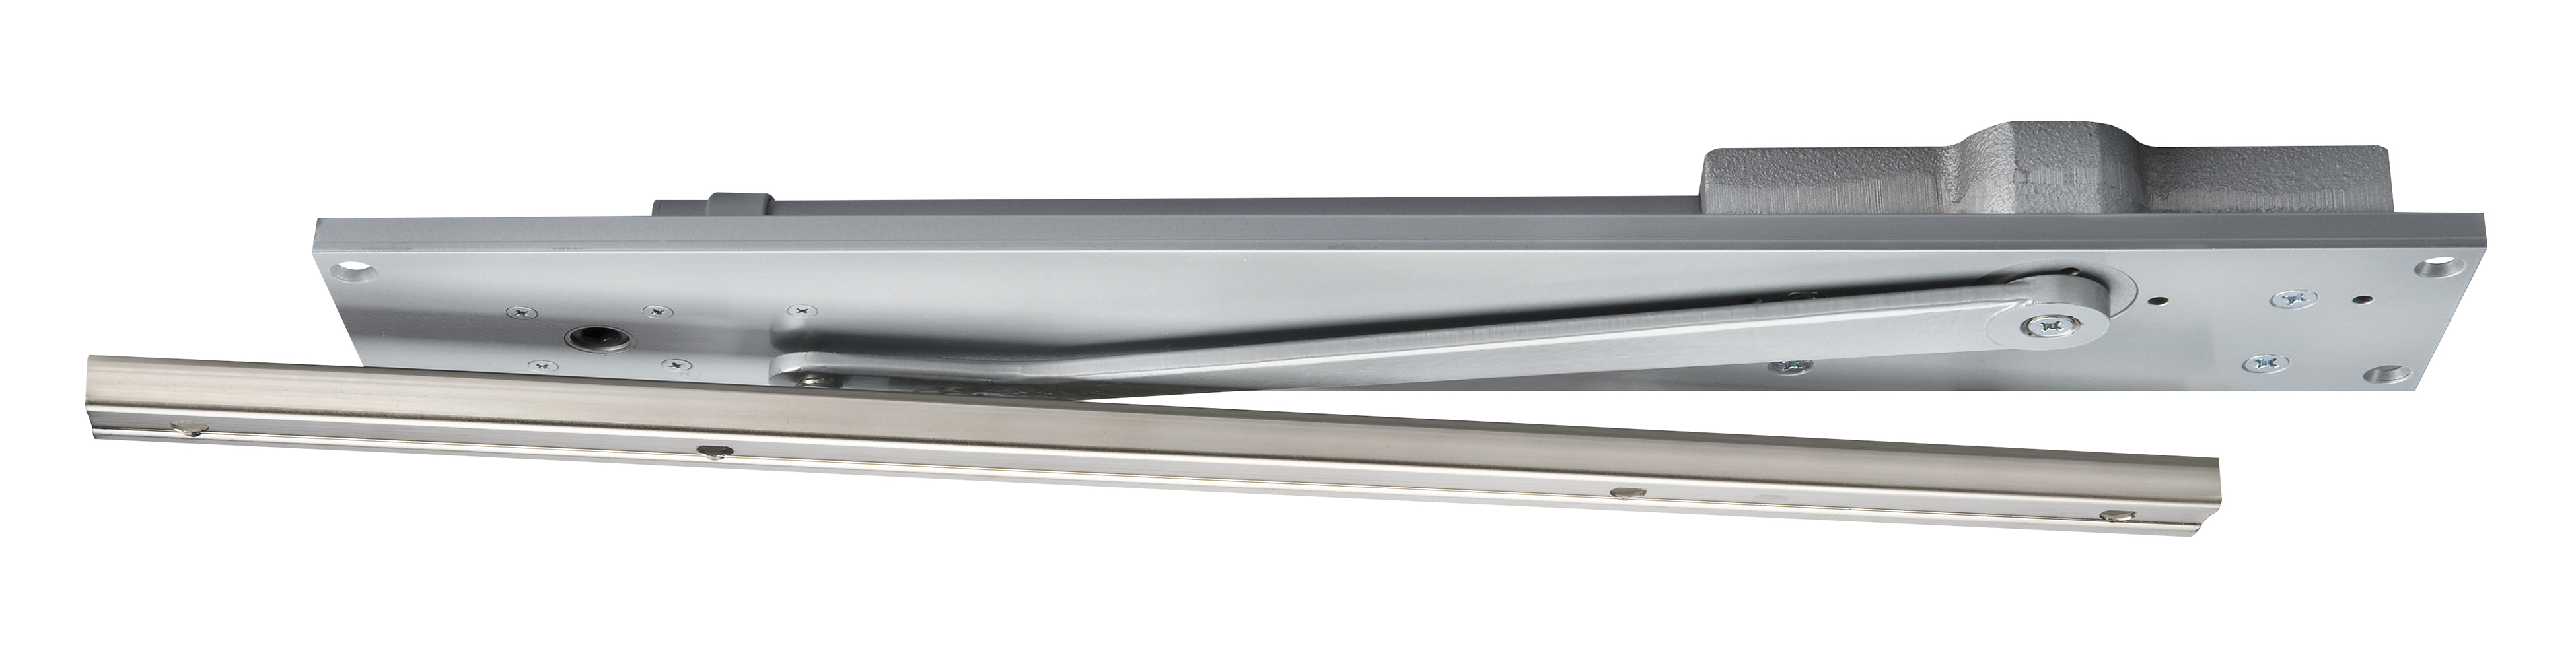 91 Architectural Grade Offset Overhead Concealed Closer